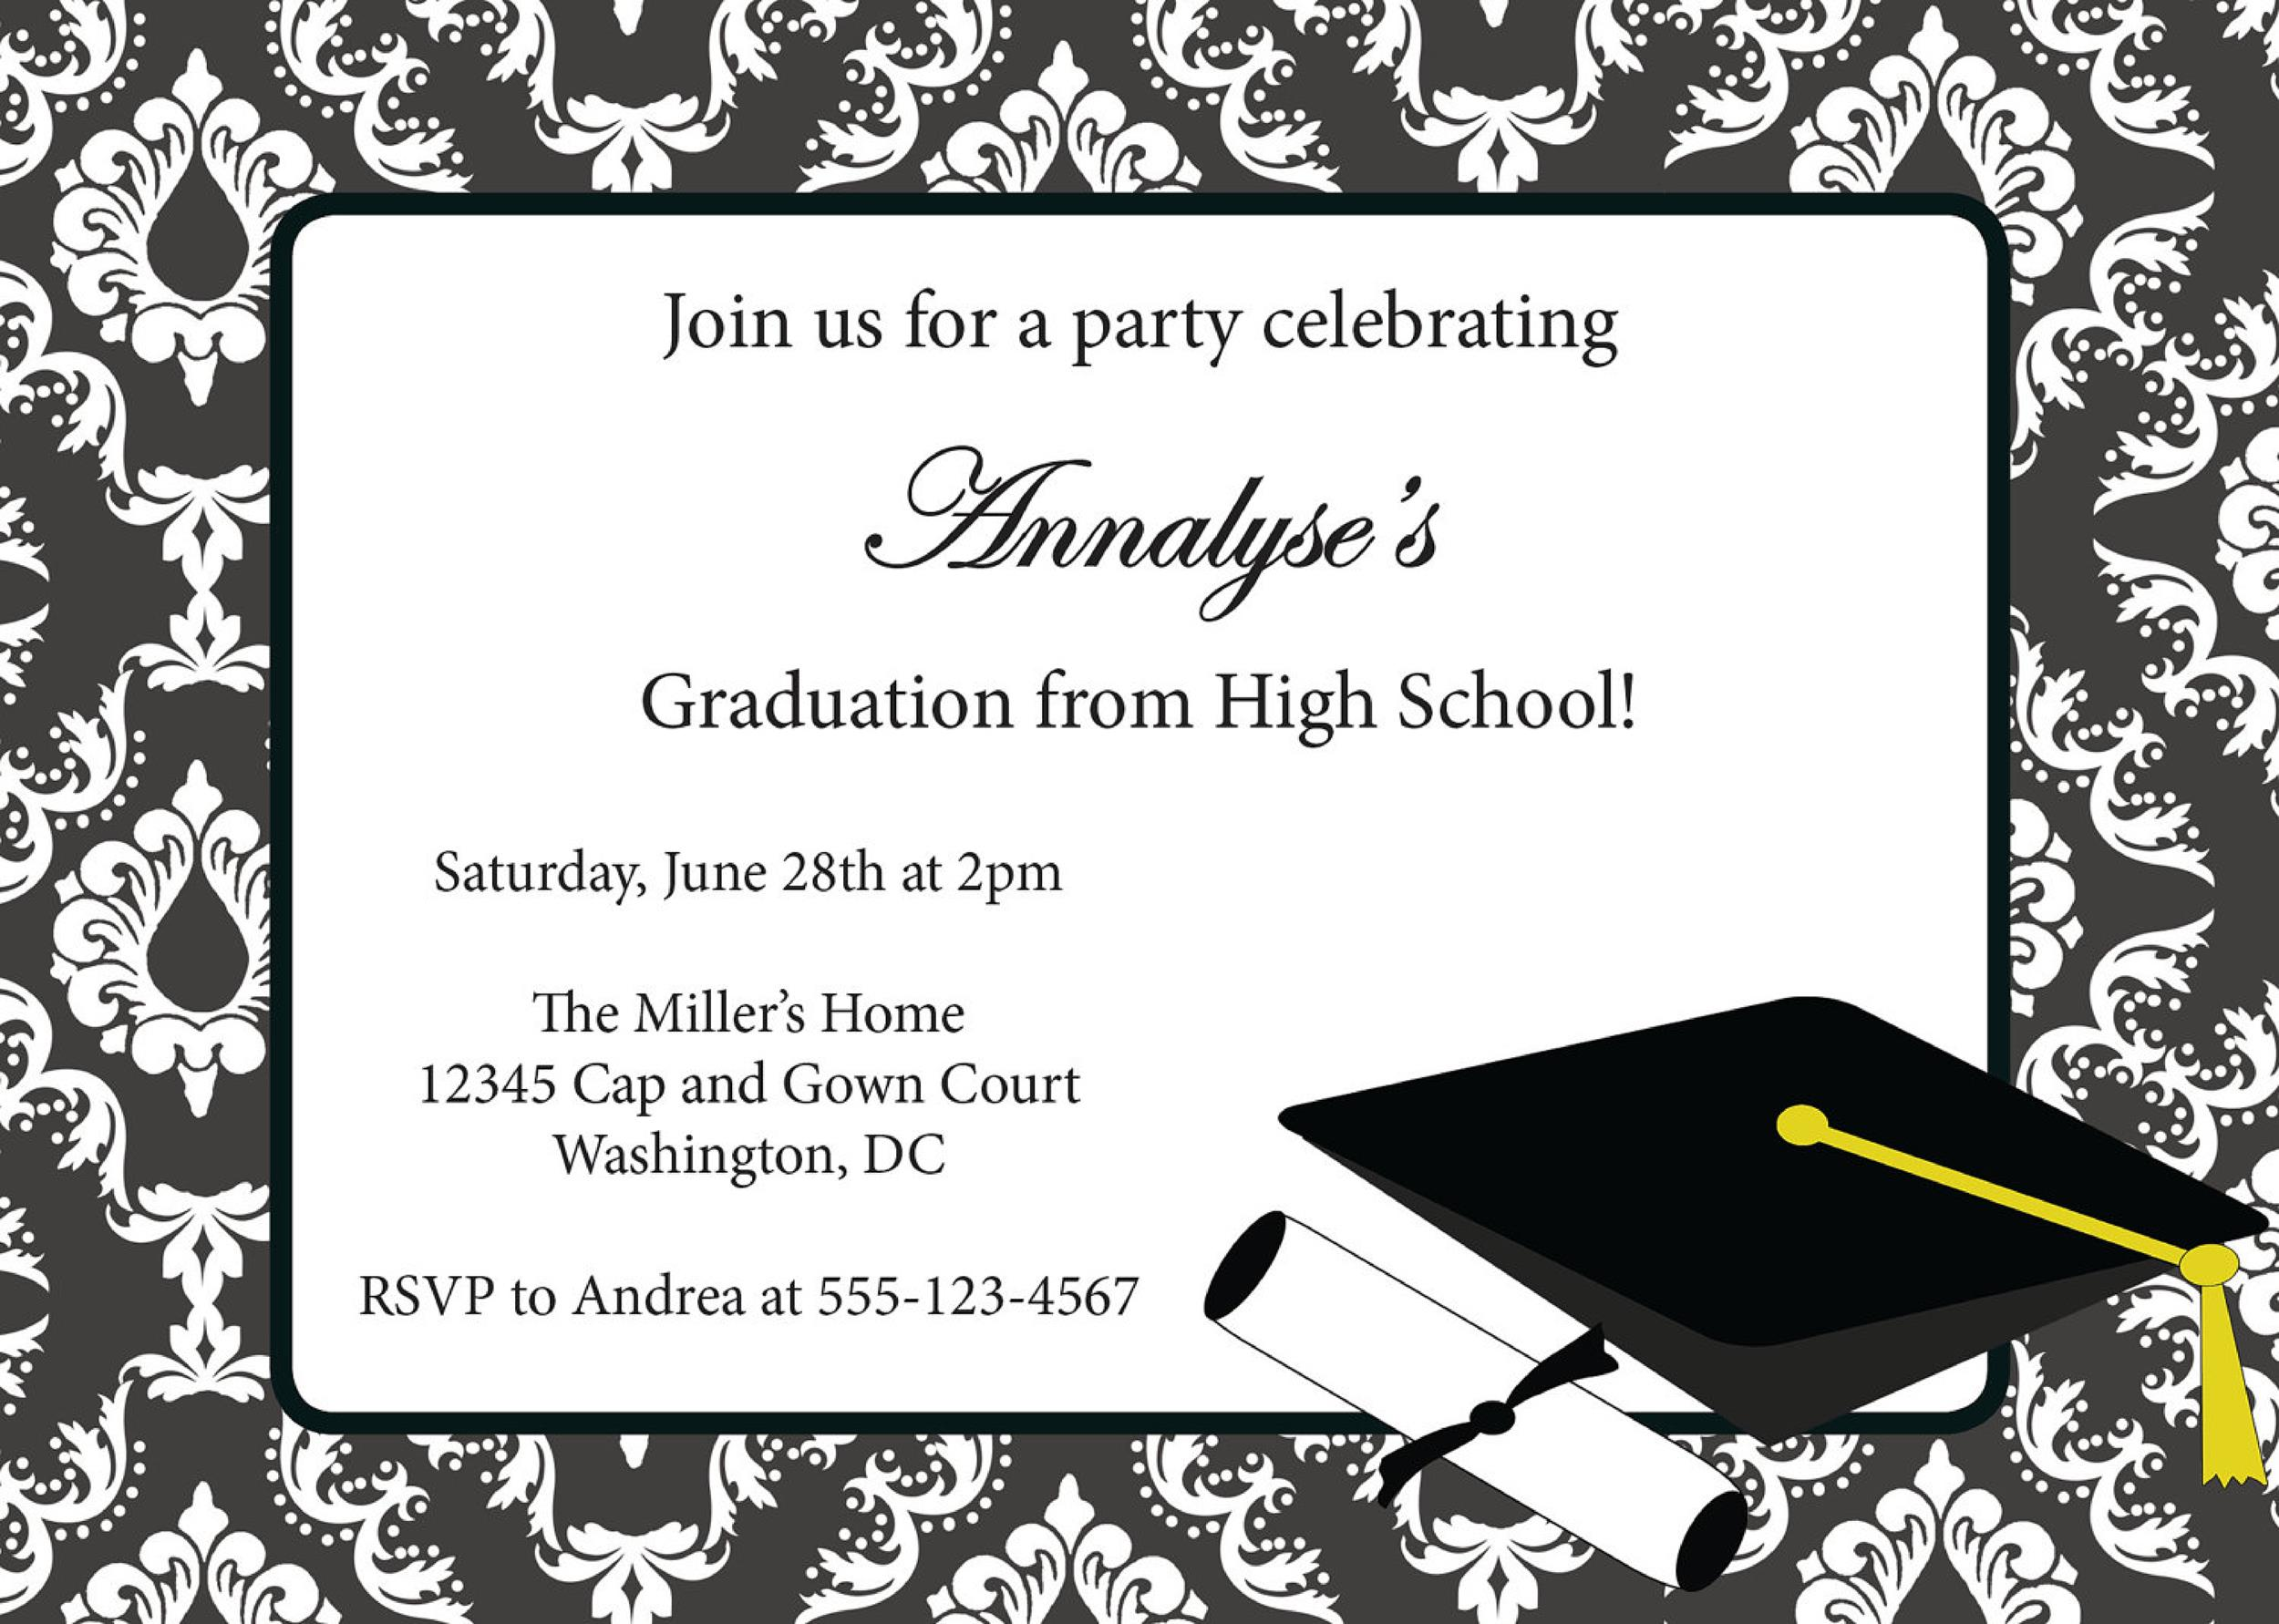 Modest image intended for free printable graduation invitation templates